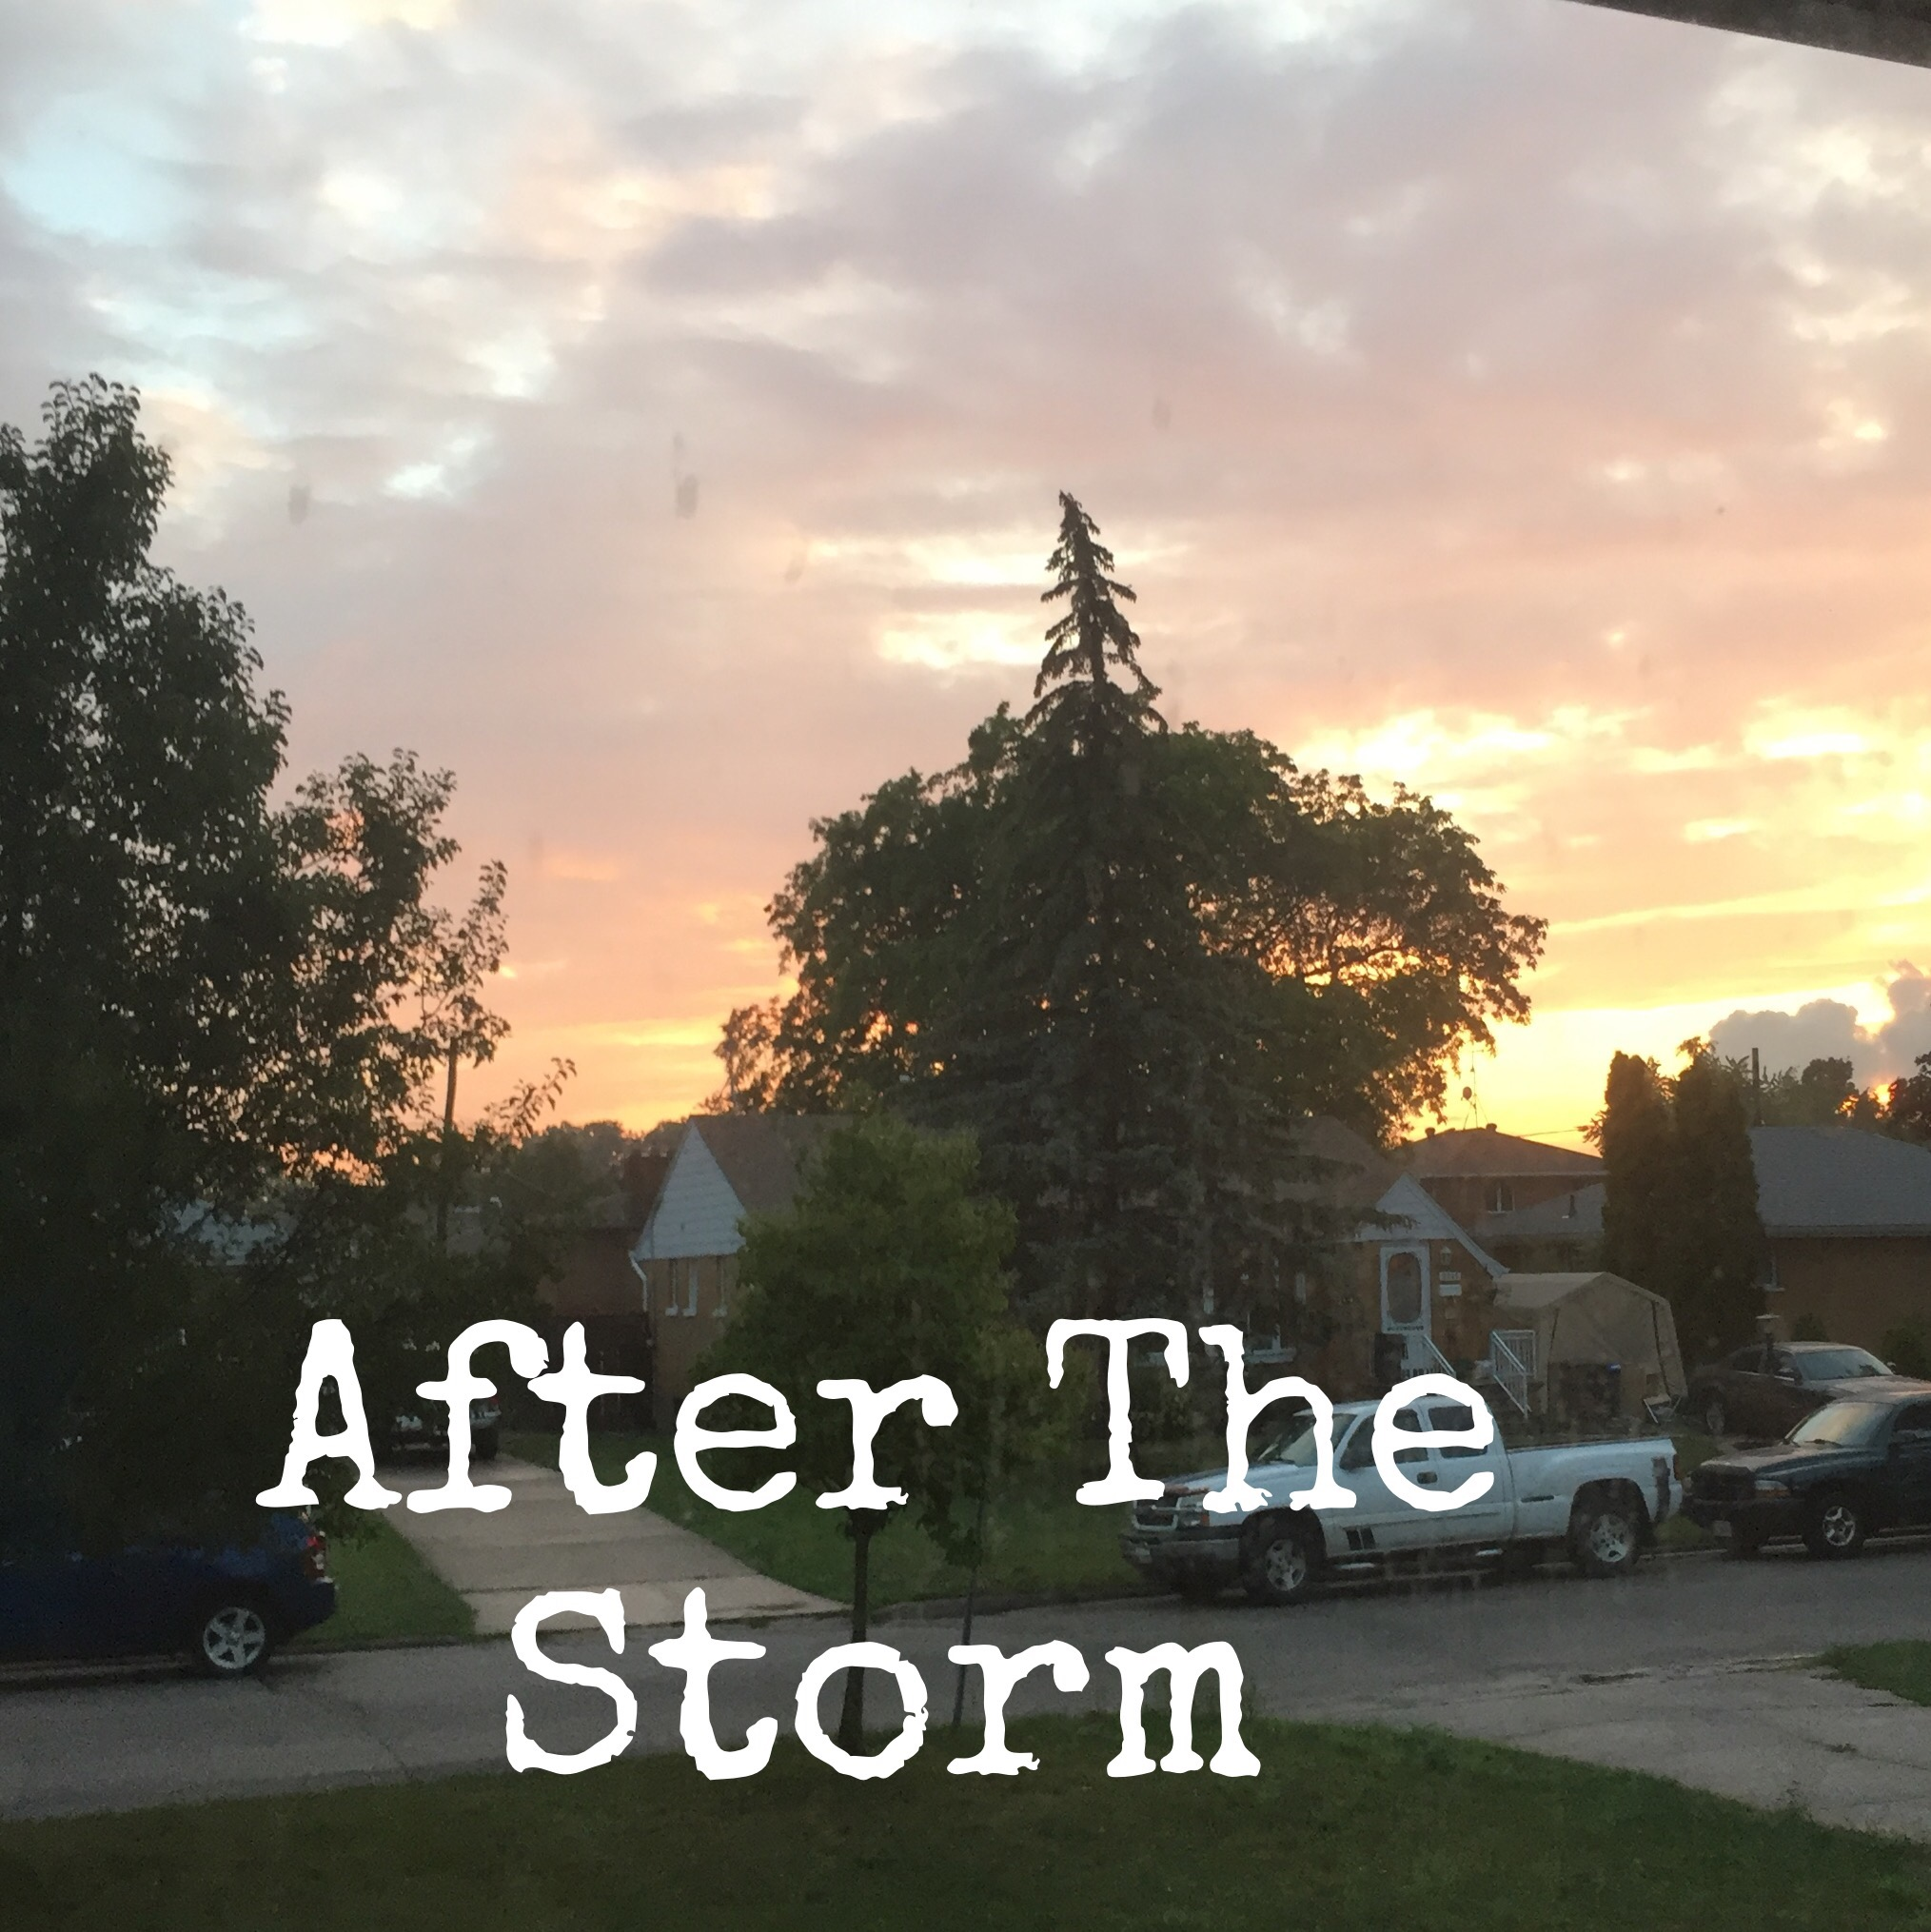 After the storm photo